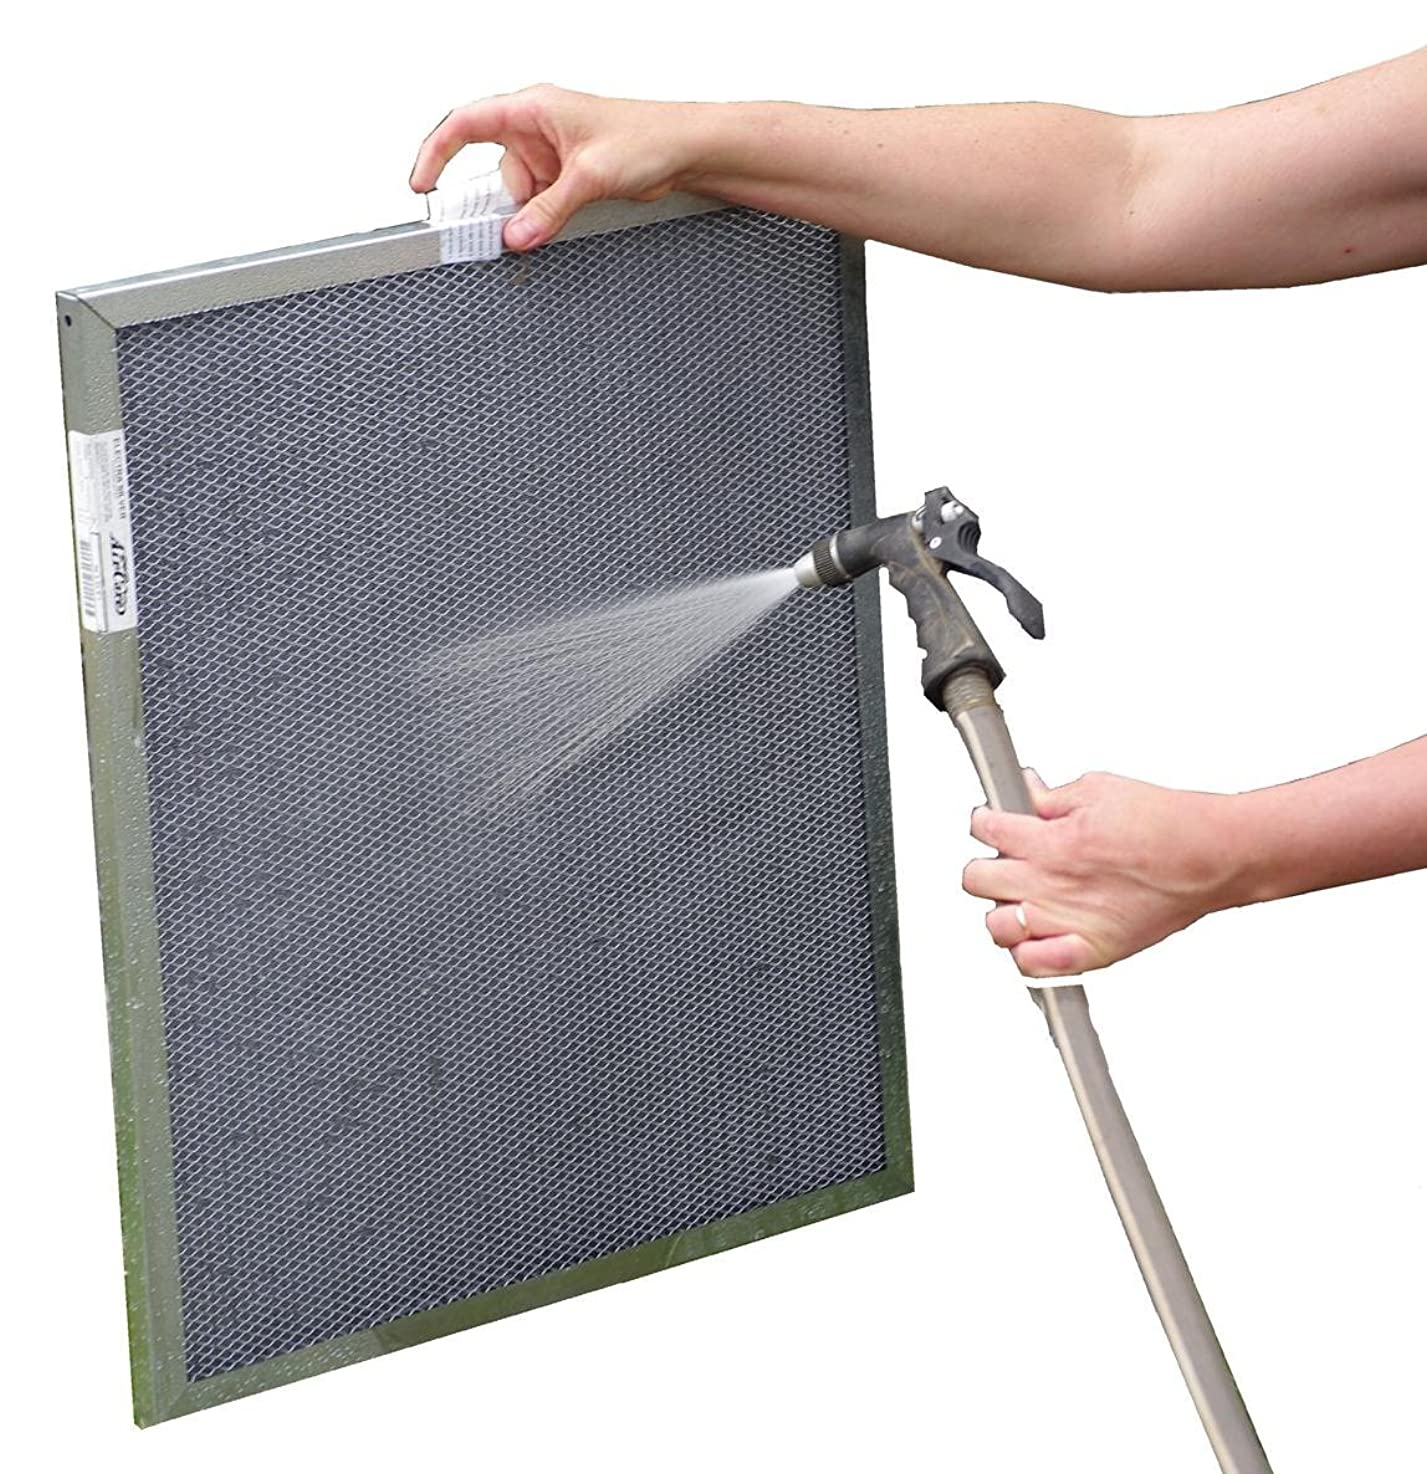 20x22x1 Electrostatic Washable Permanent A/C Furnace Air Filter - Reusable - Silver Frame - Lifetime Warranty